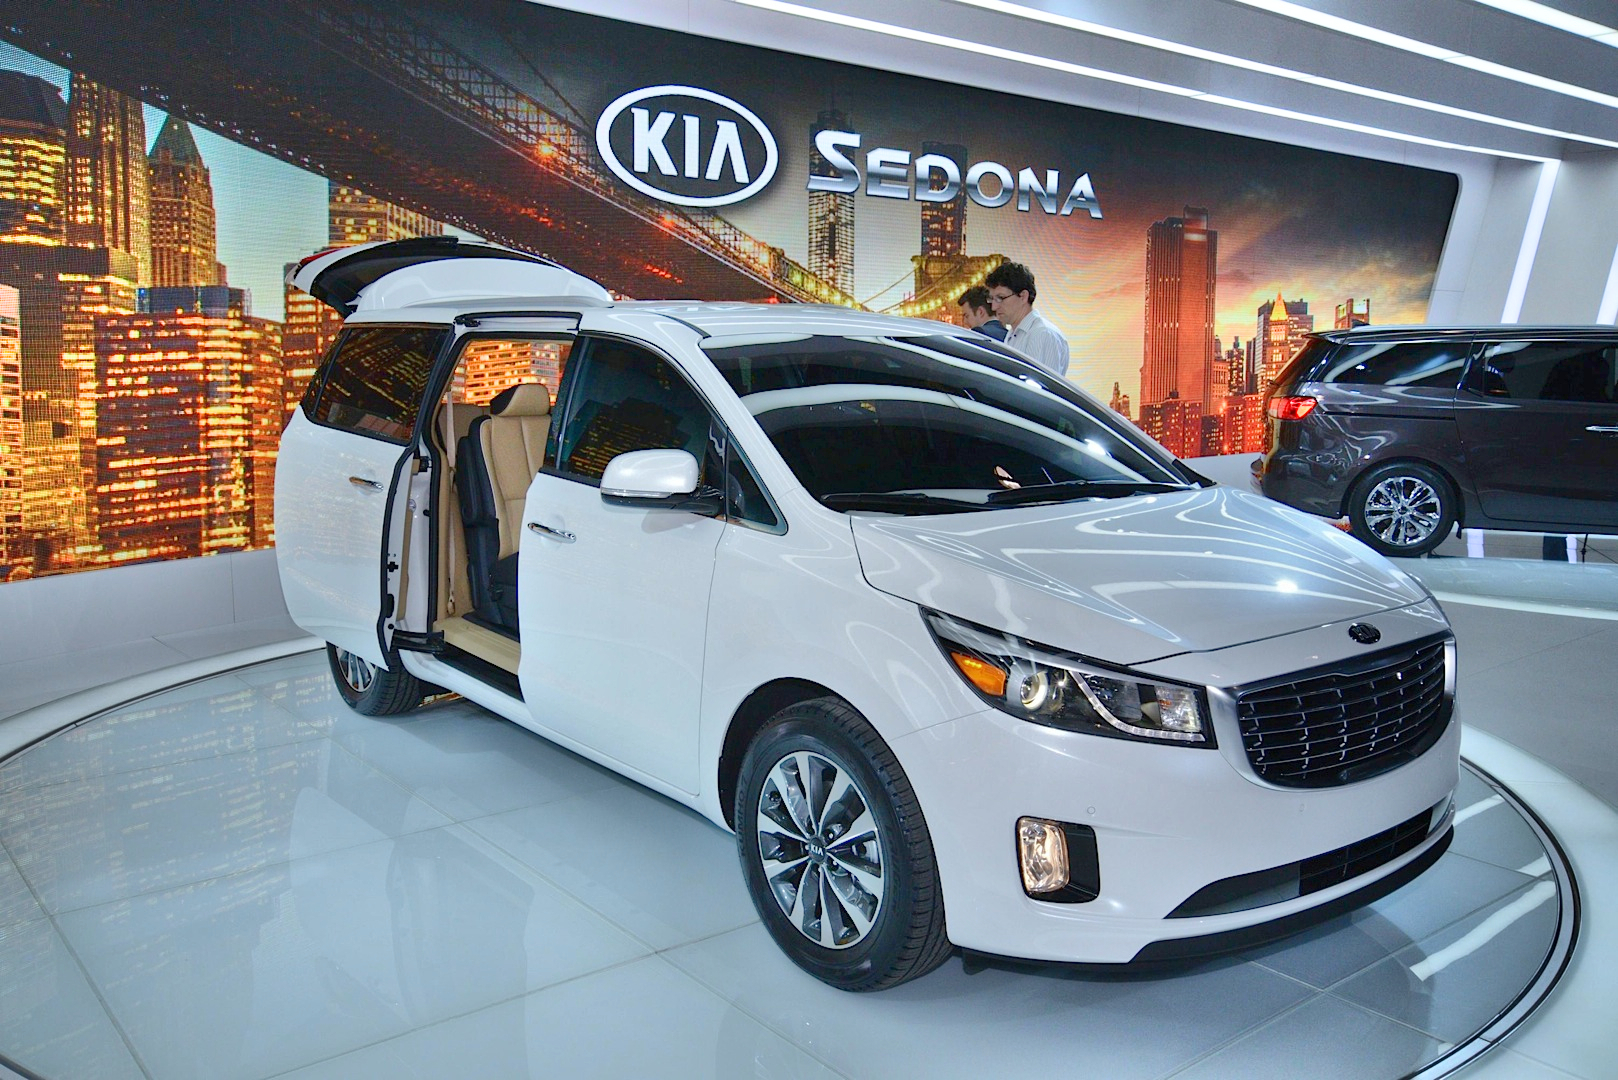 2015 kia sedona looks ready to take on the town country live photos autoevolution. Black Bedroom Furniture Sets. Home Design Ideas